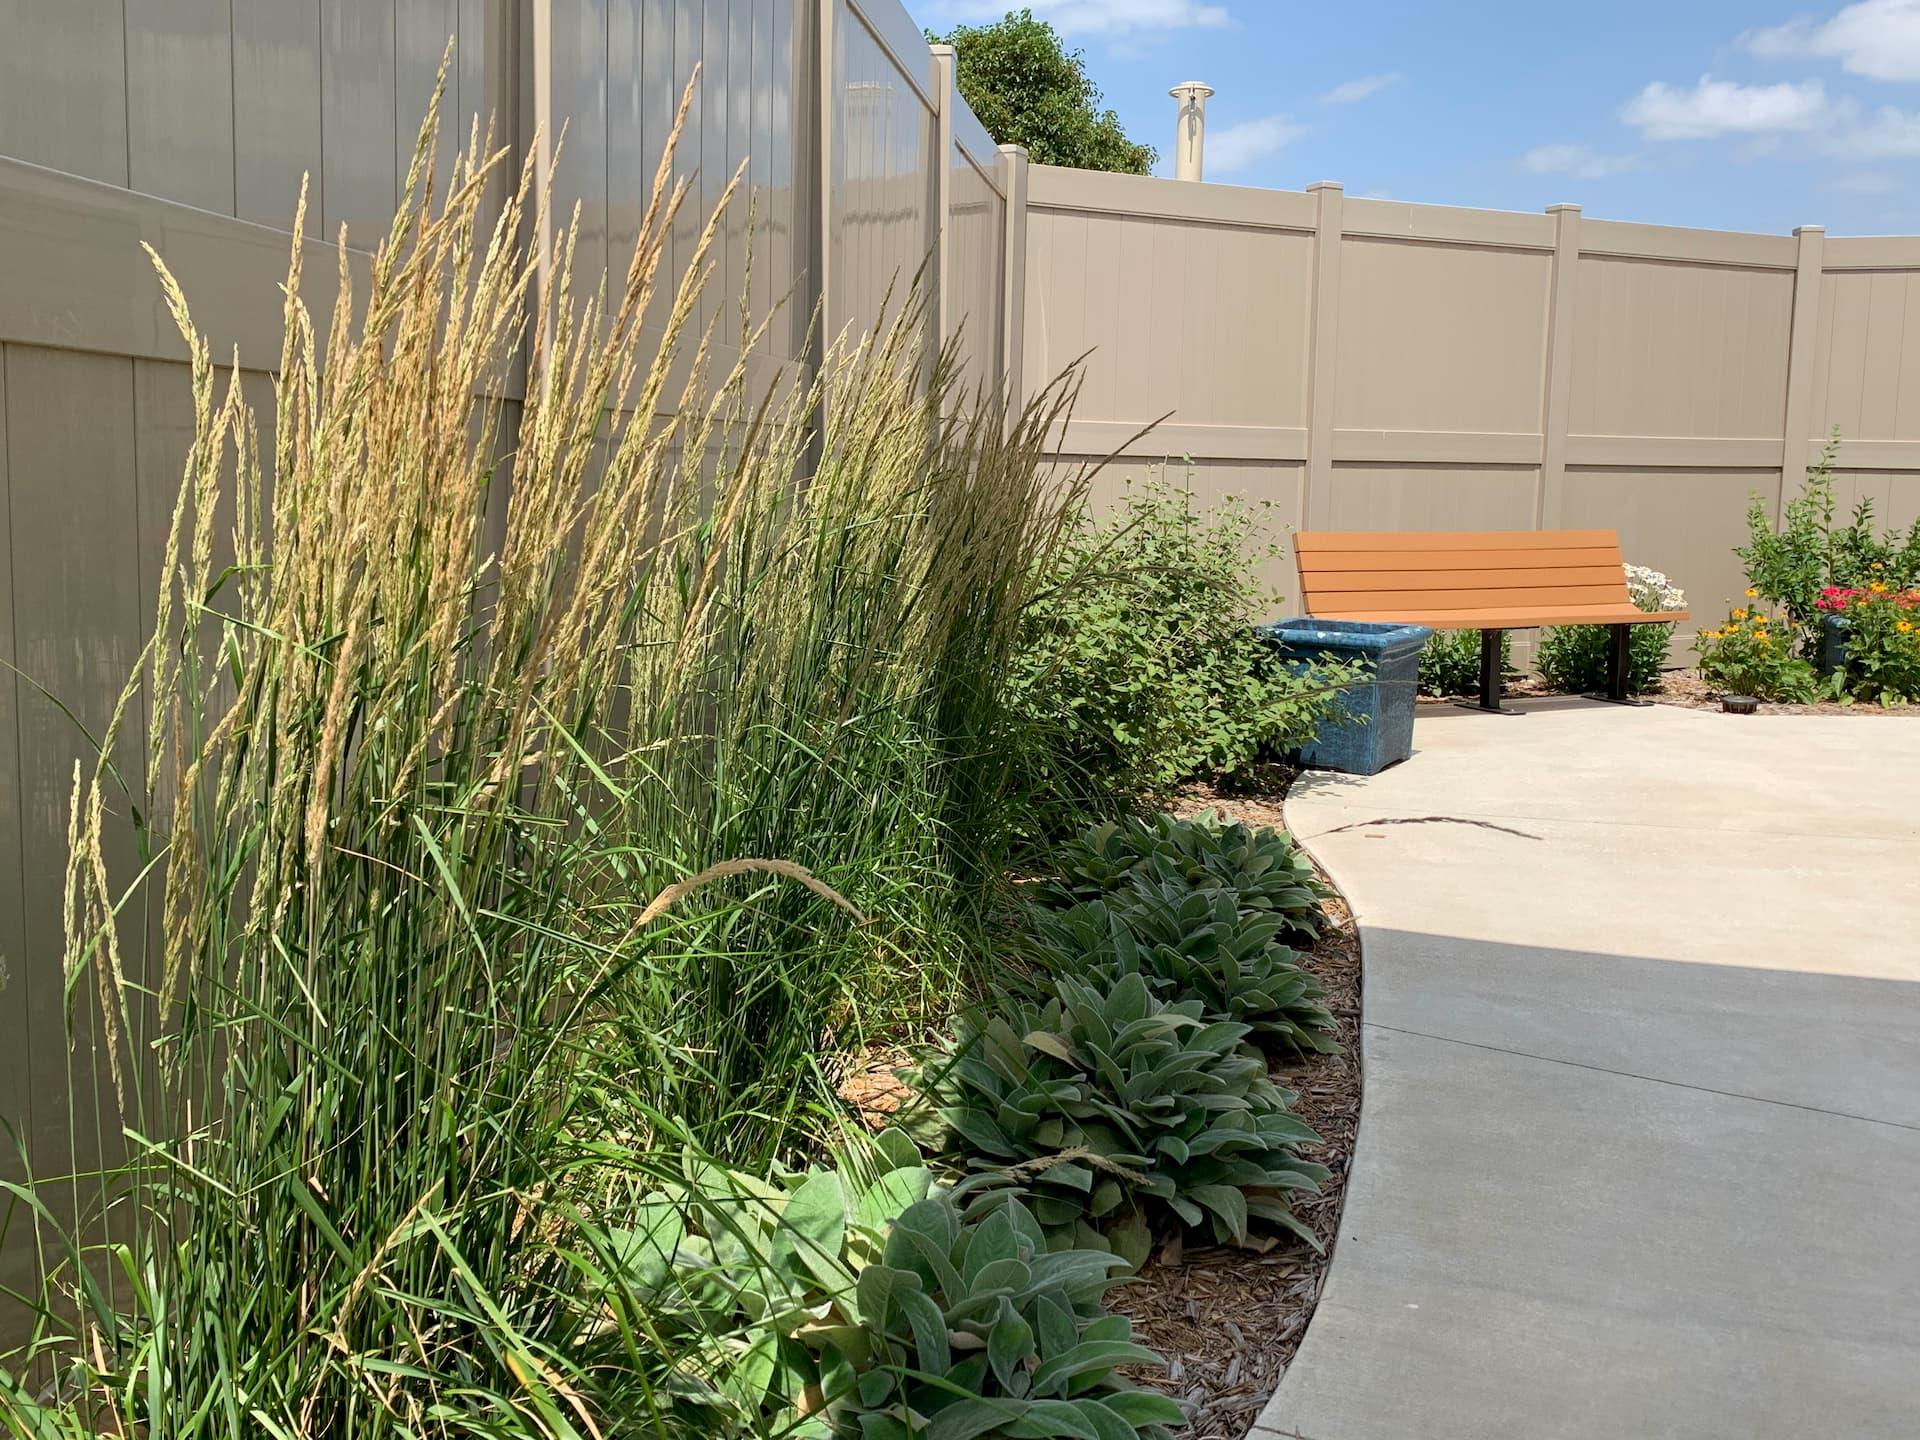 pampous grass and landscaping in Barrick and Kristi Wilson Terrace at newton medical center newton ks